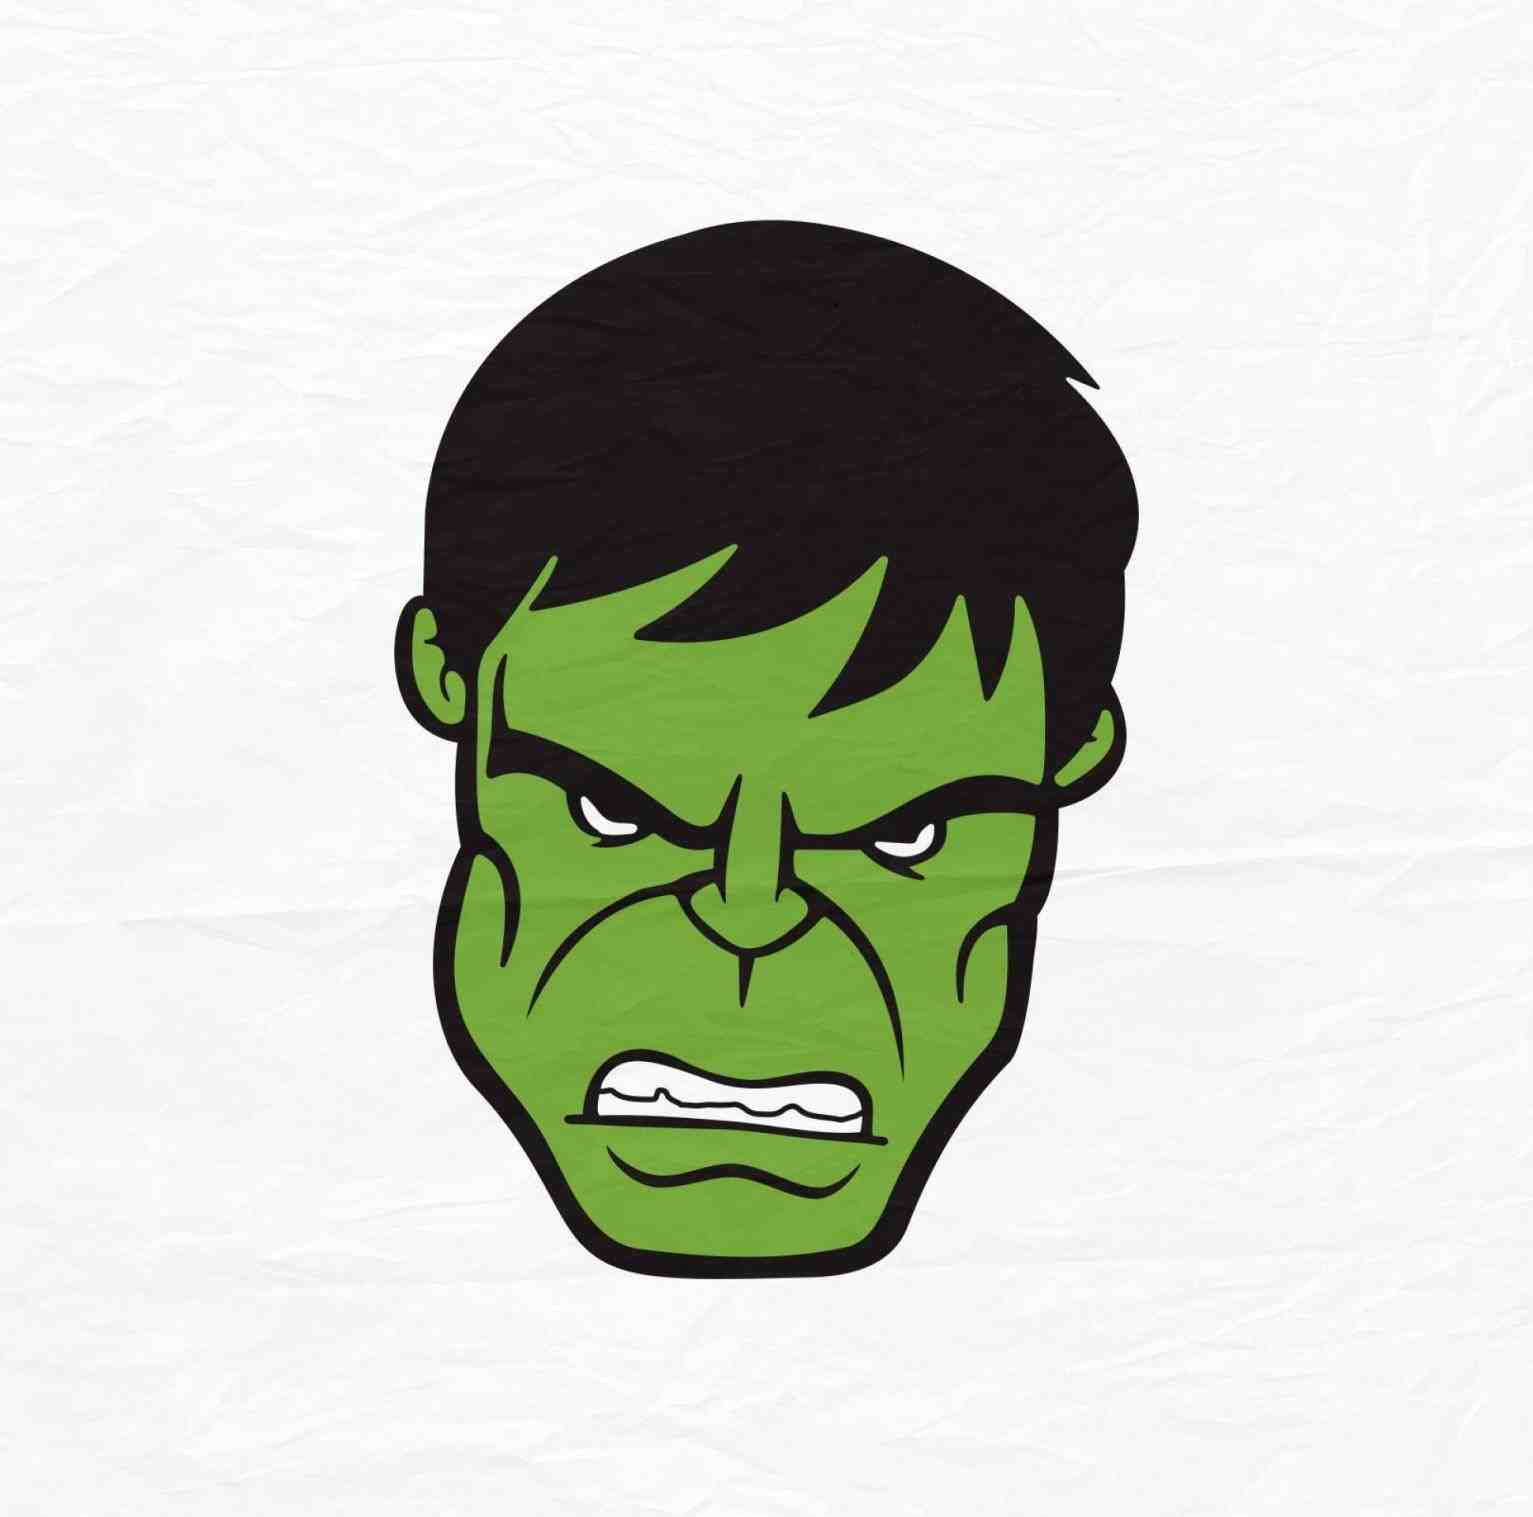 Hulk face clipart at free for personal for Incredible hulk face template